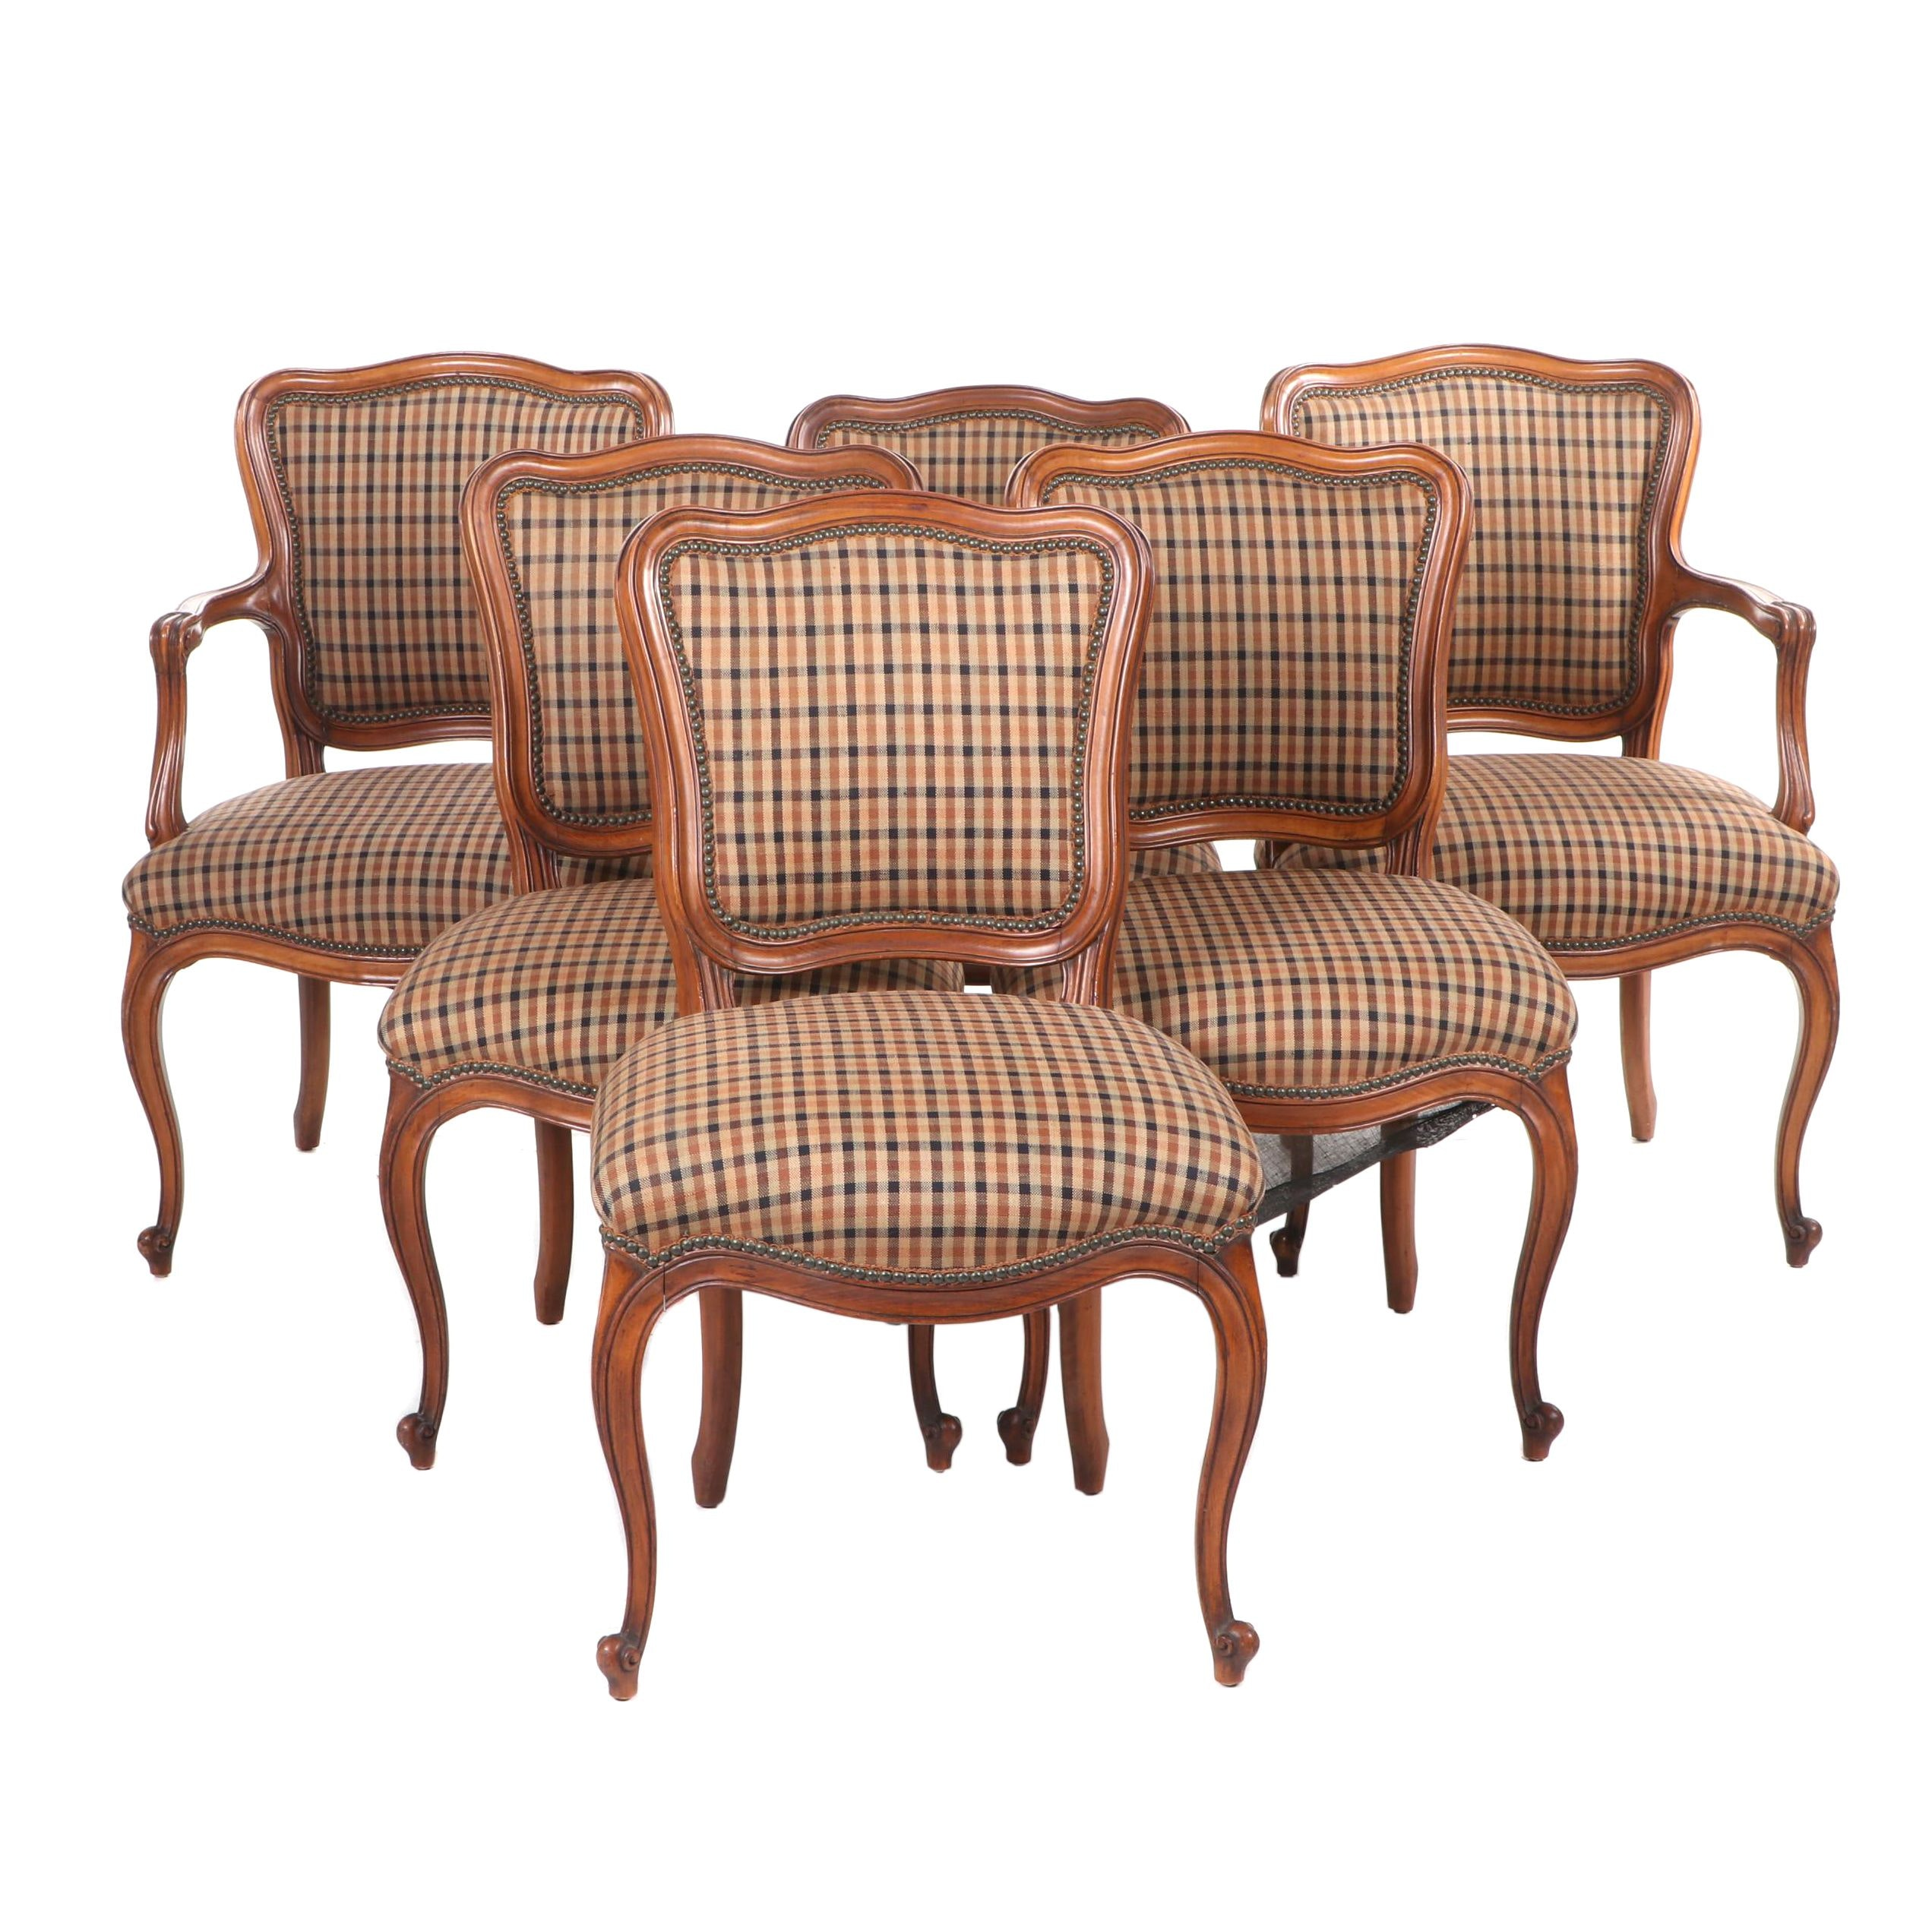 French Provincial Style Dining Chairs, Contemporary